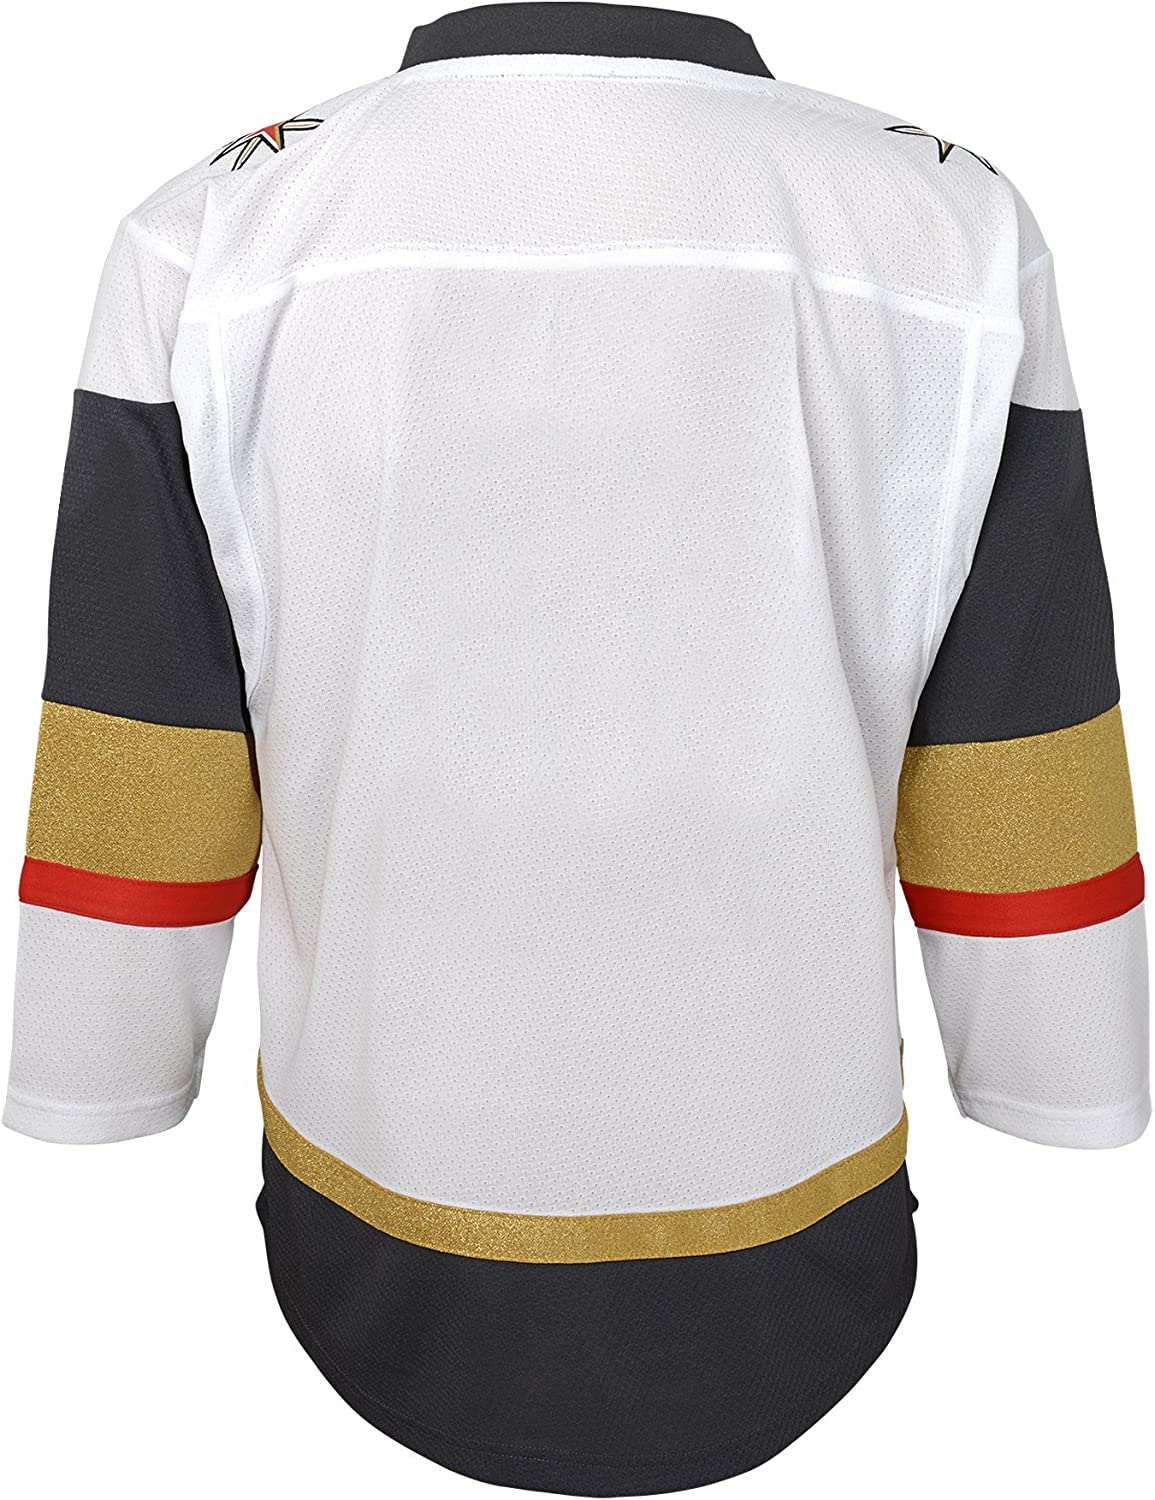 6-10 White Youth Small//Medium NHL Colorado Avalanche Youth Outerstuff Replica Jersey-Away